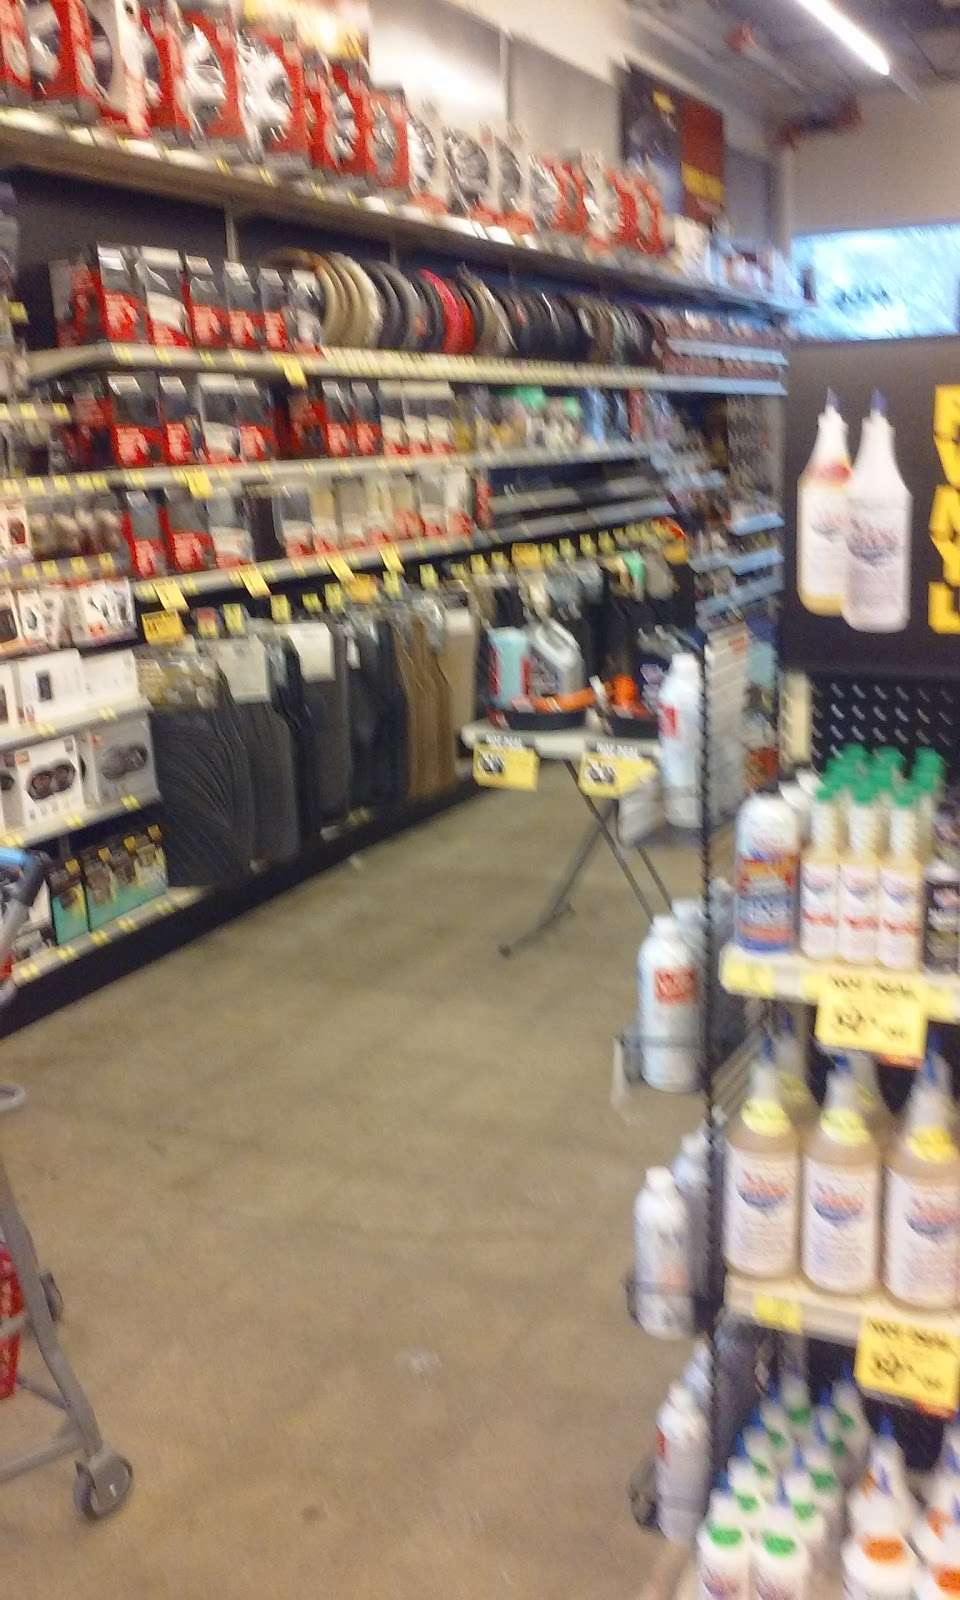 Advance Auto Parts - car repair  | Photo 2 of 10 | Address: 4155 S 76th St, Milwaukee, WI 53220, USA | Phone: (414) 546-1311